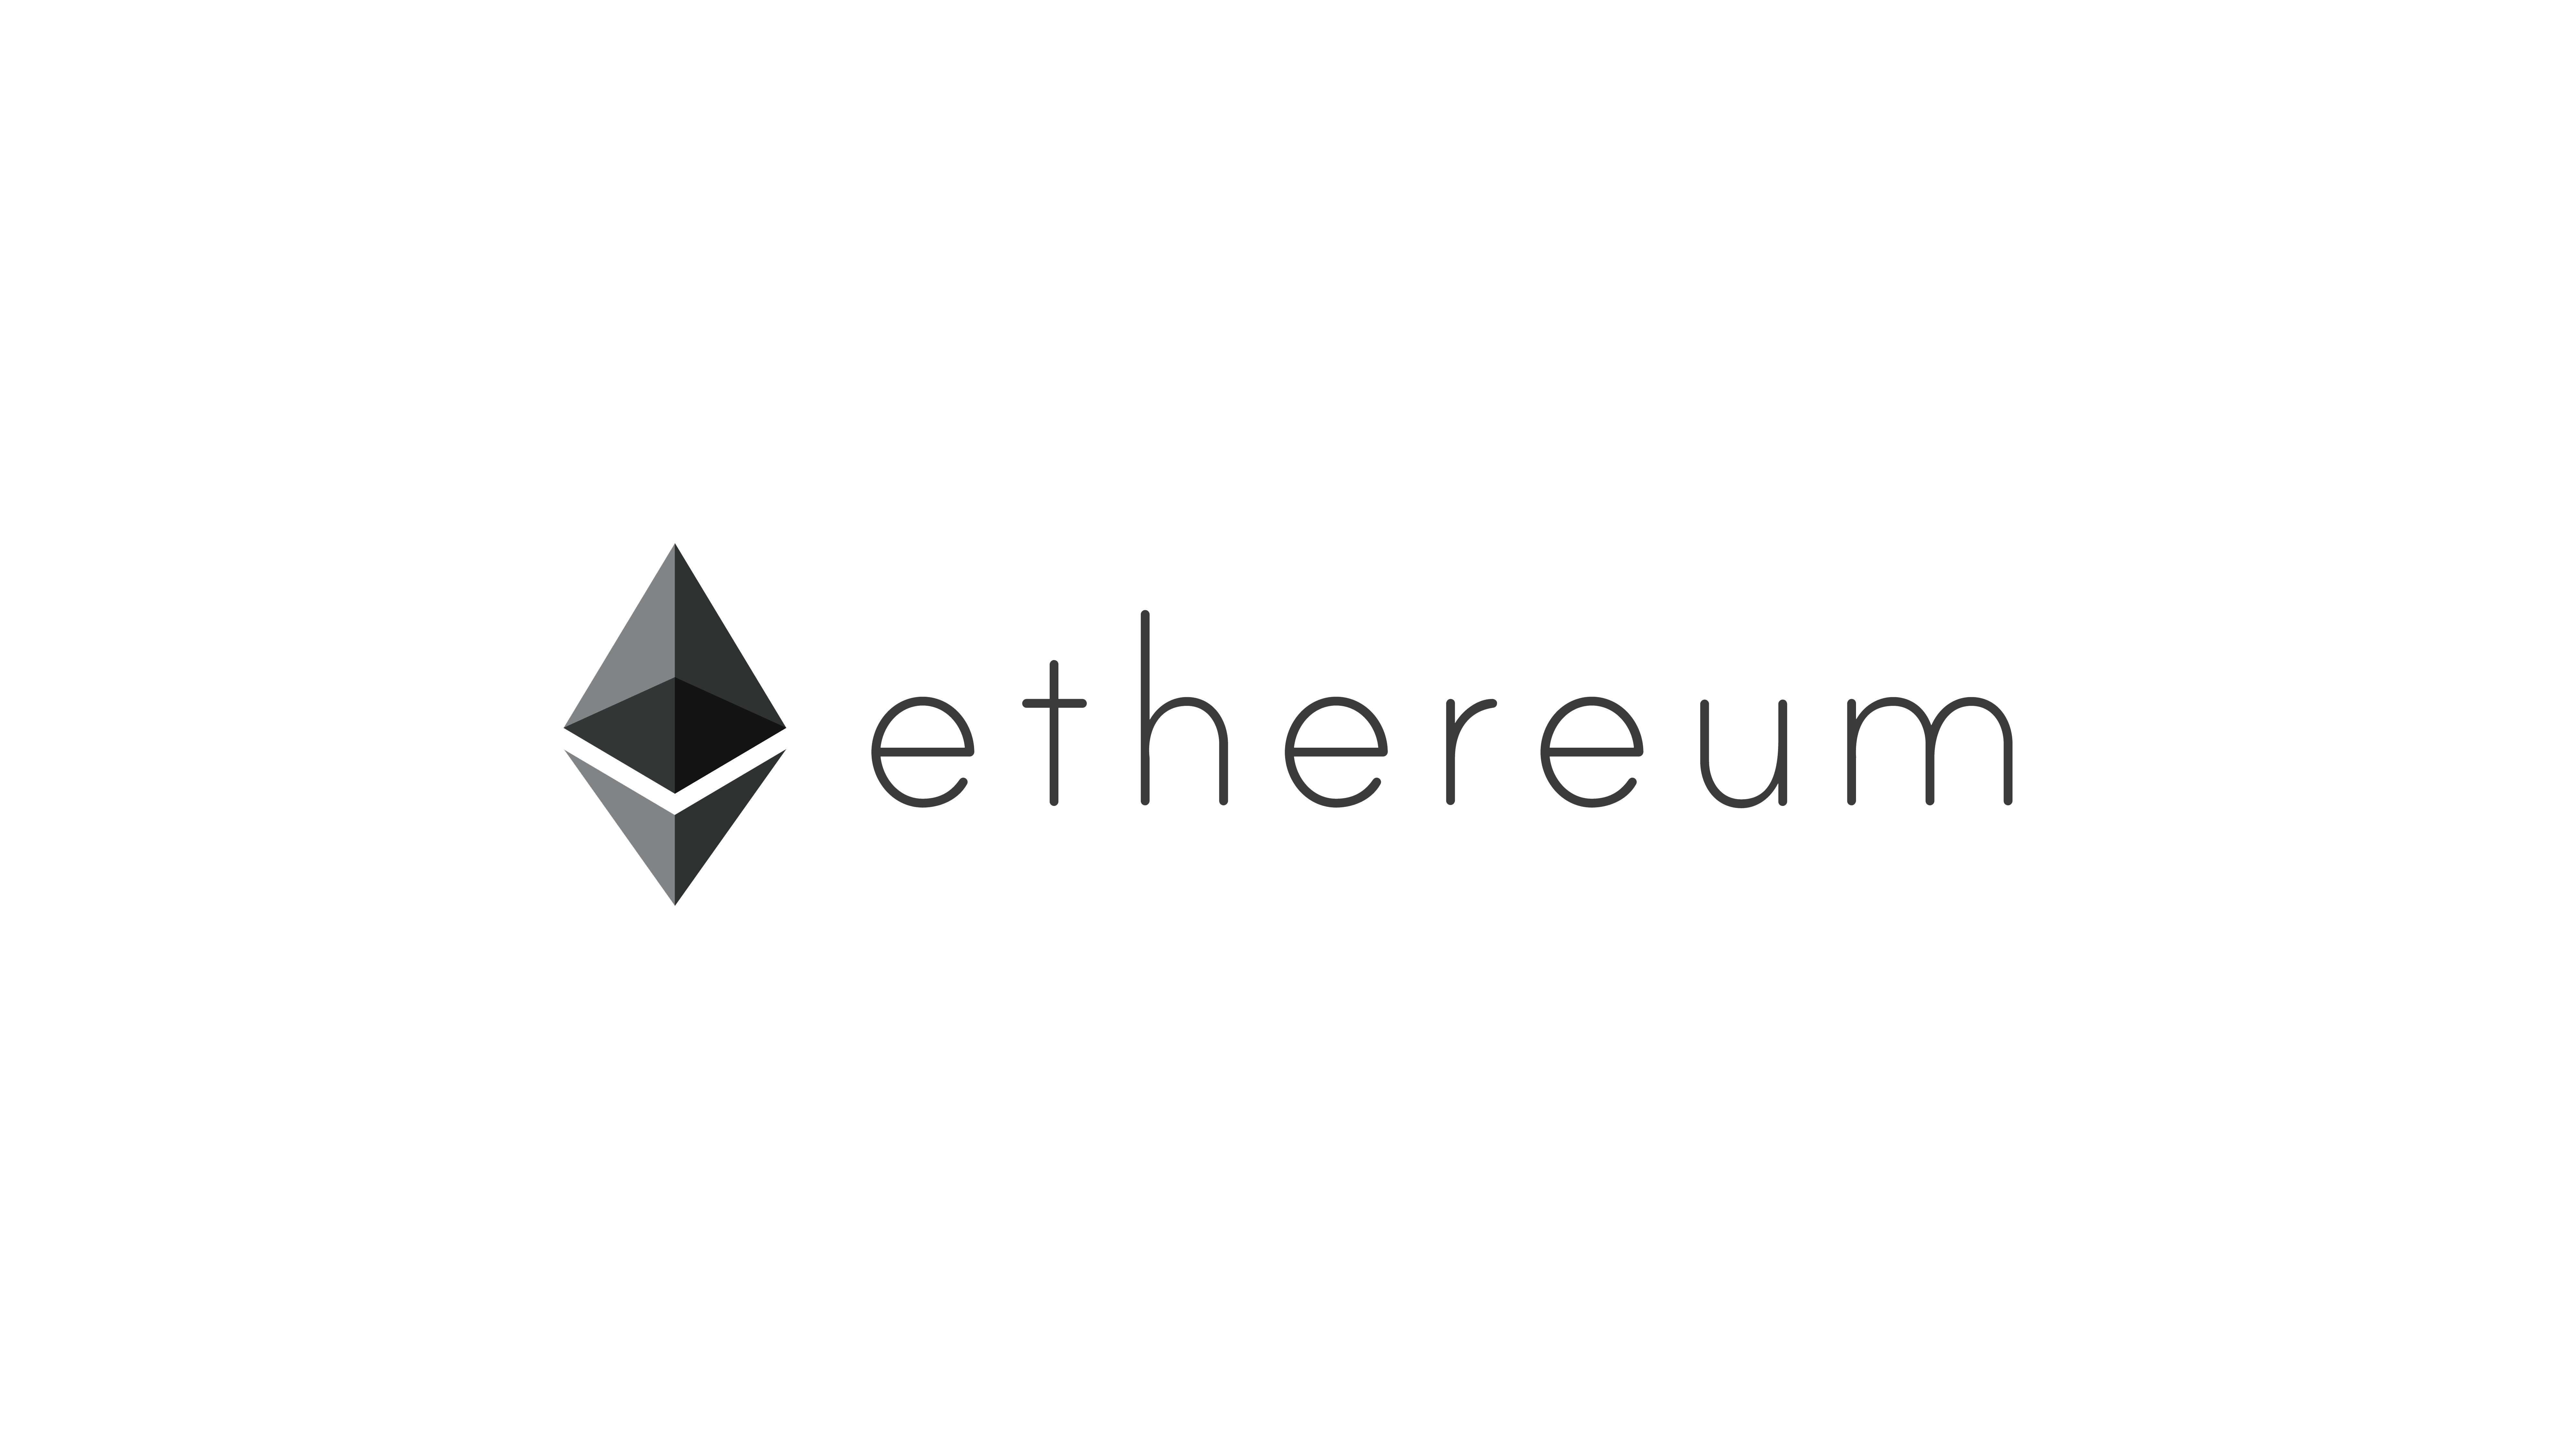 ethereum-security-featured-image